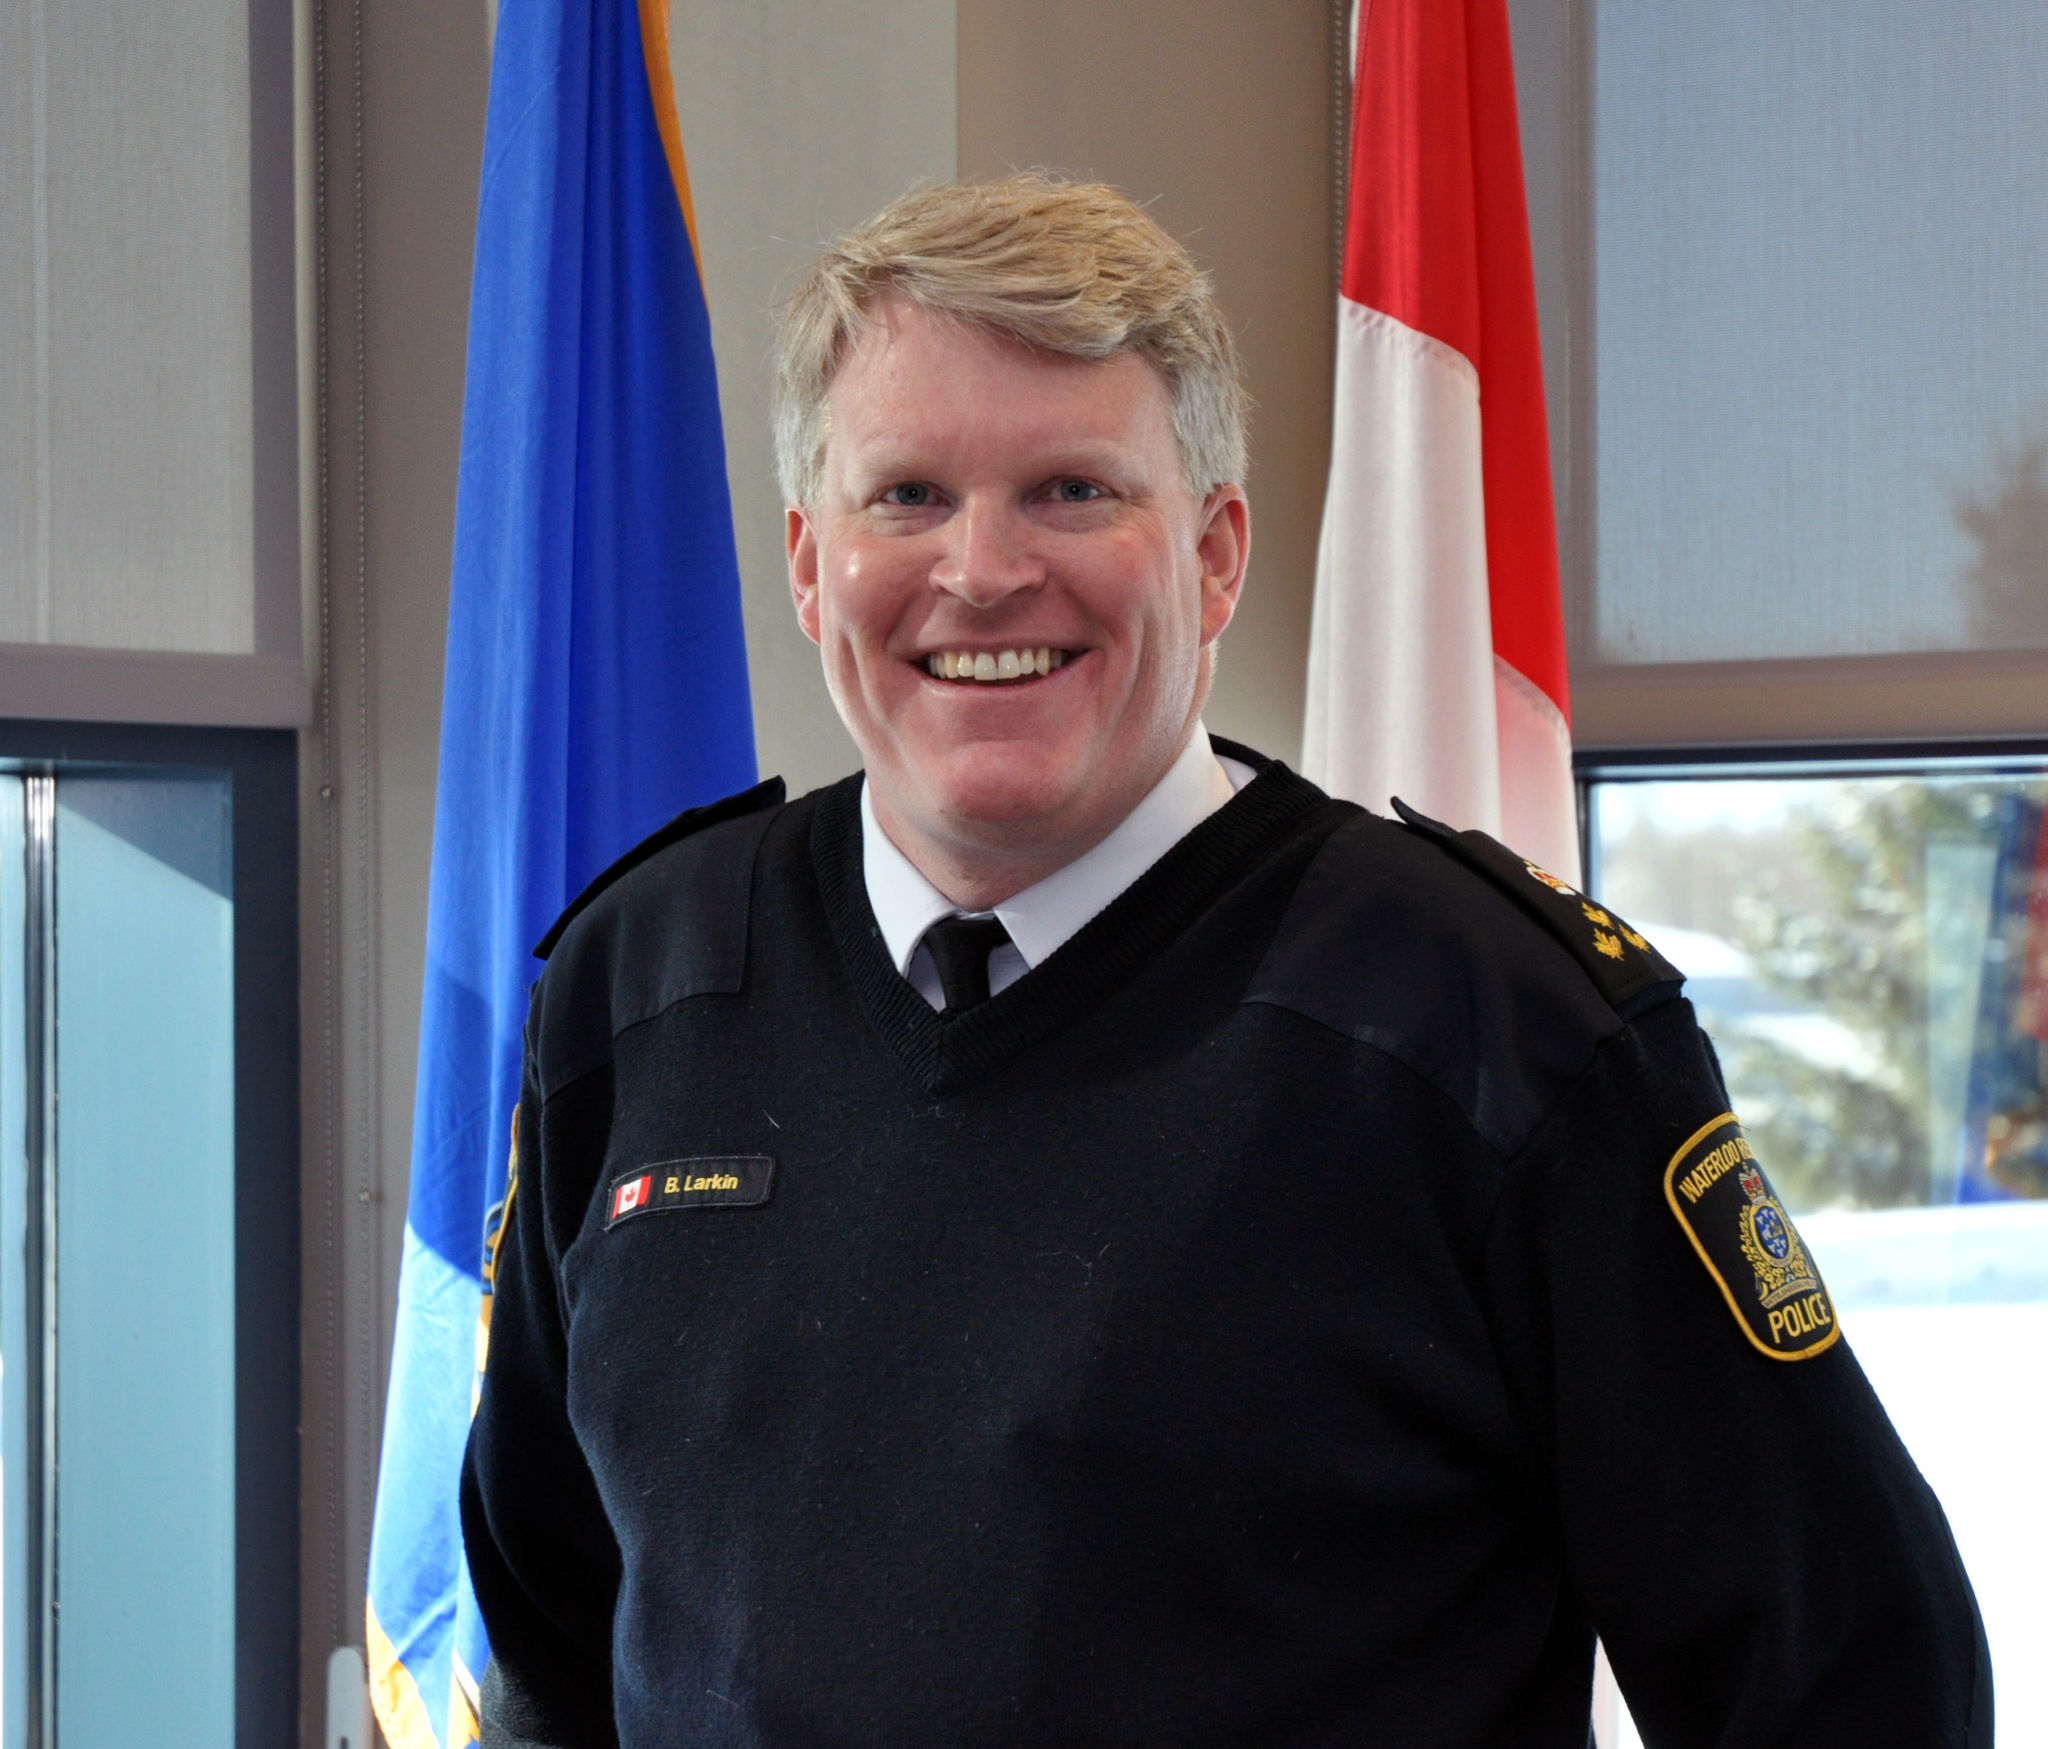 One Act – WRPS Chief Bryan Larkin